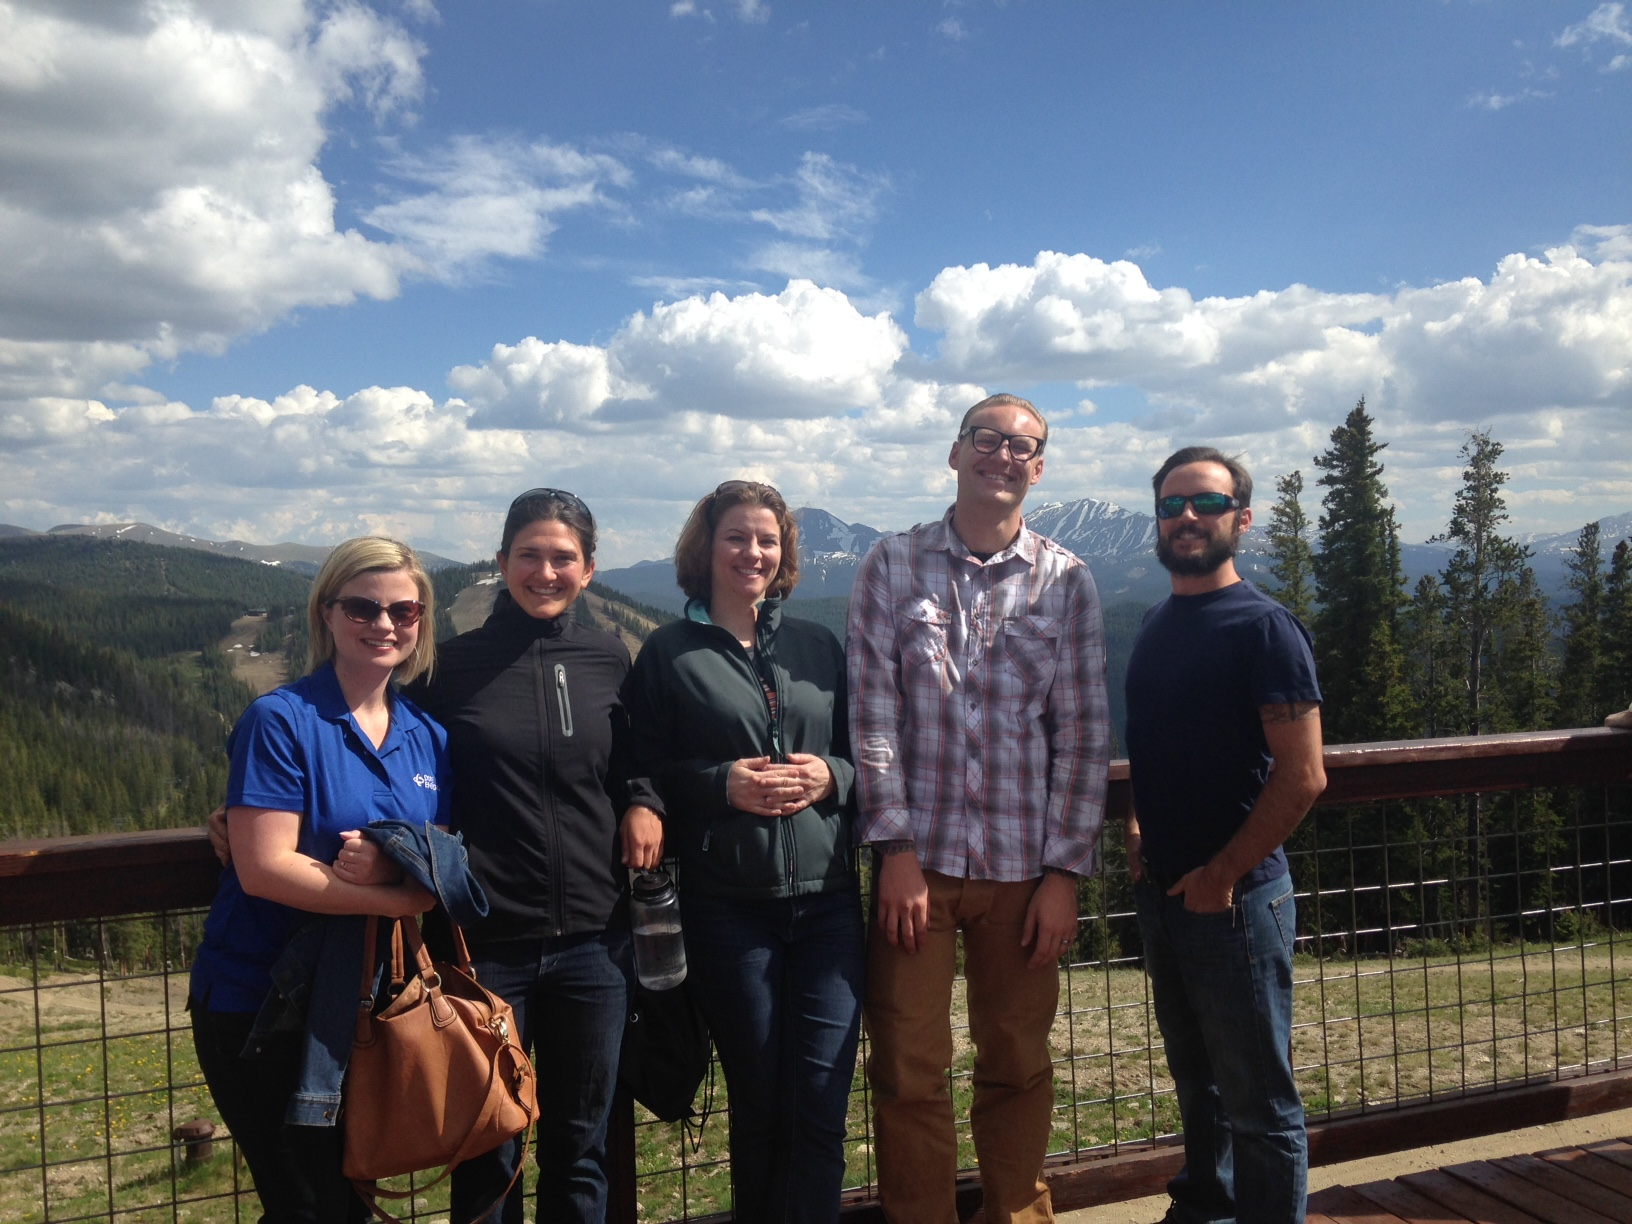 Networking with new friends from California and Florida at the top of the Gondola in Keystone.